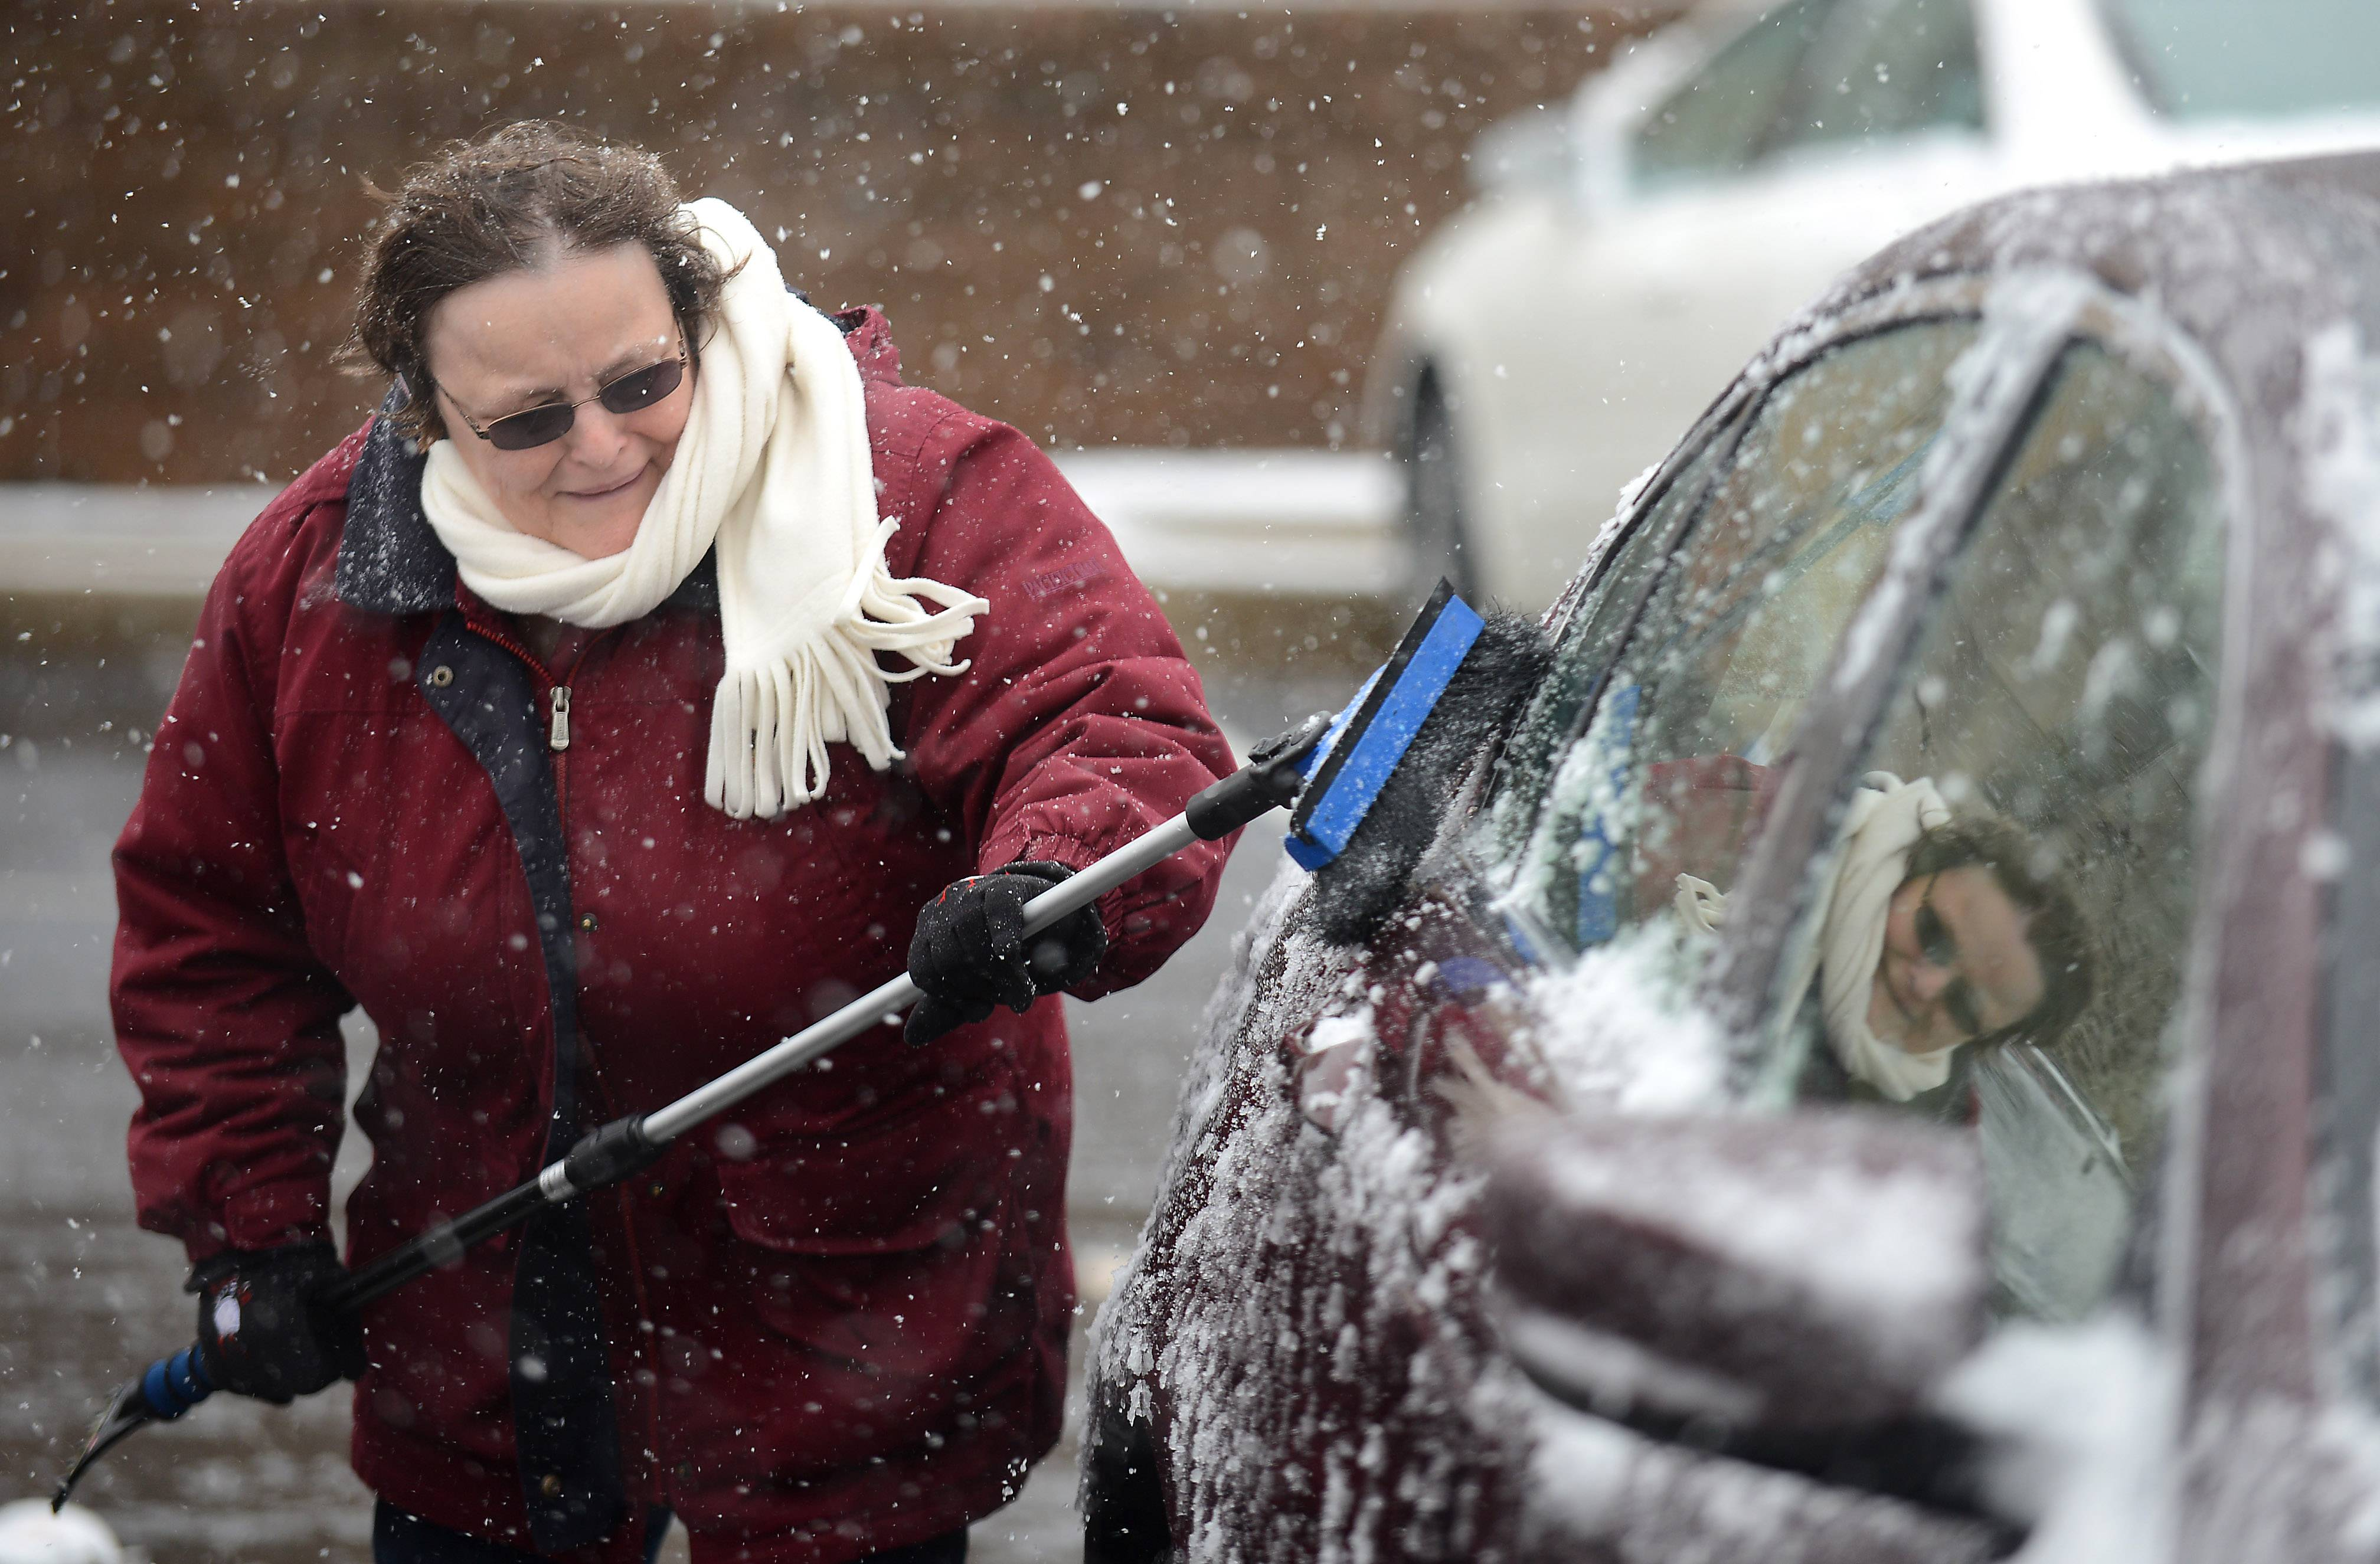 Suburban snow plows could get their first test of the season Monday, as the National Weather Service issued a winter weather advisory stating the region could be hit by 3 to 5 inches of snow during the late afternoon and evening.